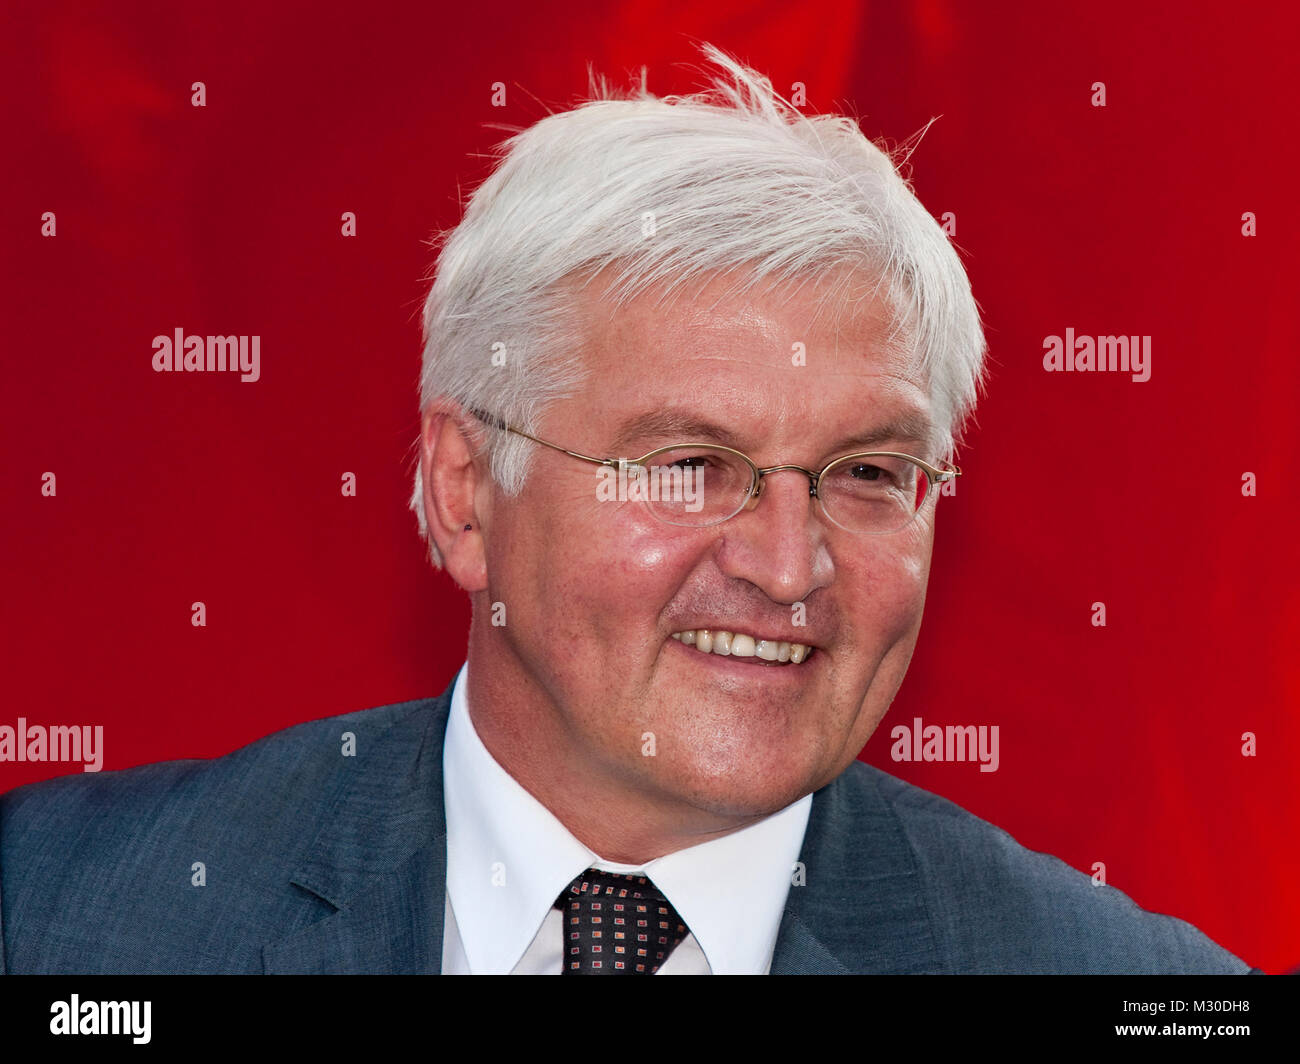 Steinmeier Portrait Stock Photos & Steinmeier Portrait Stock